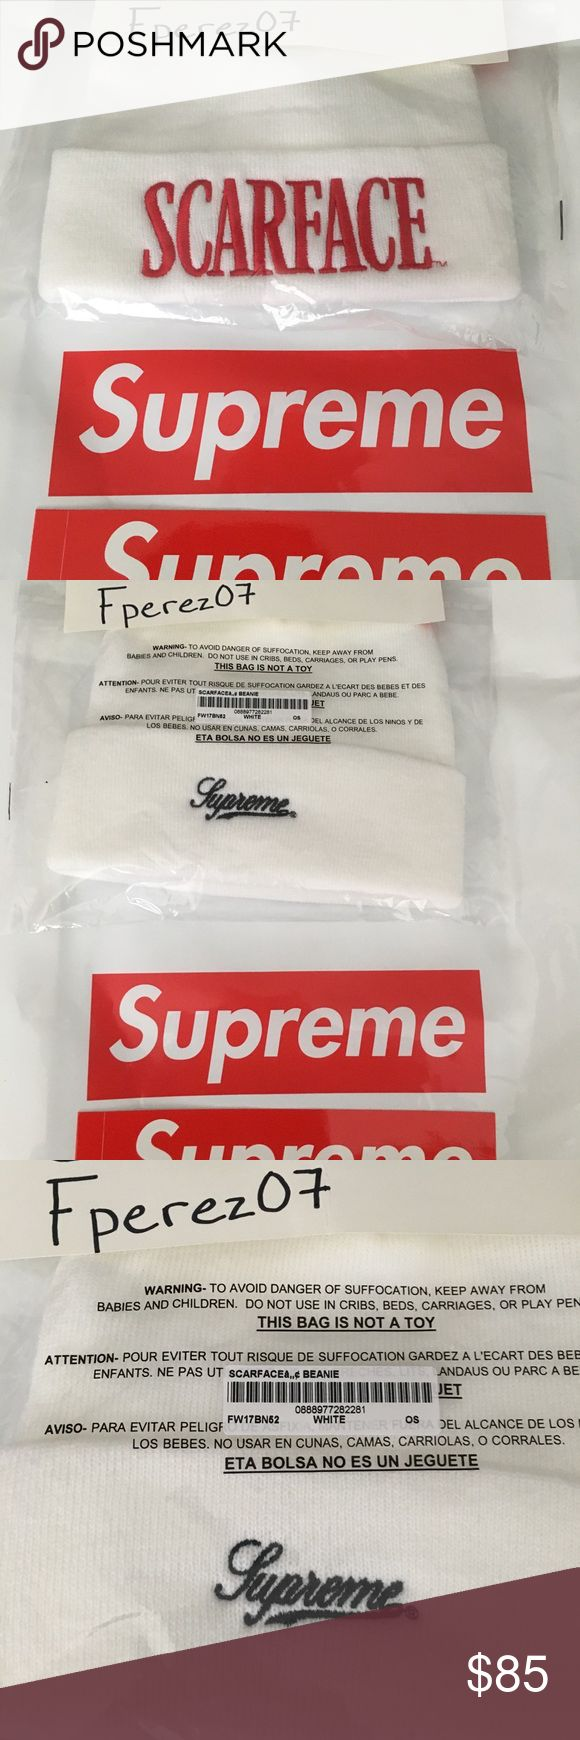 Supreme Scarface Beanie Brand new! 100% Authentic Scarface Supreme beanie , Ordered online from Supreme directly. Never opened package, will come with white supreme bag and bogo sticker Supreme Accessories Hats